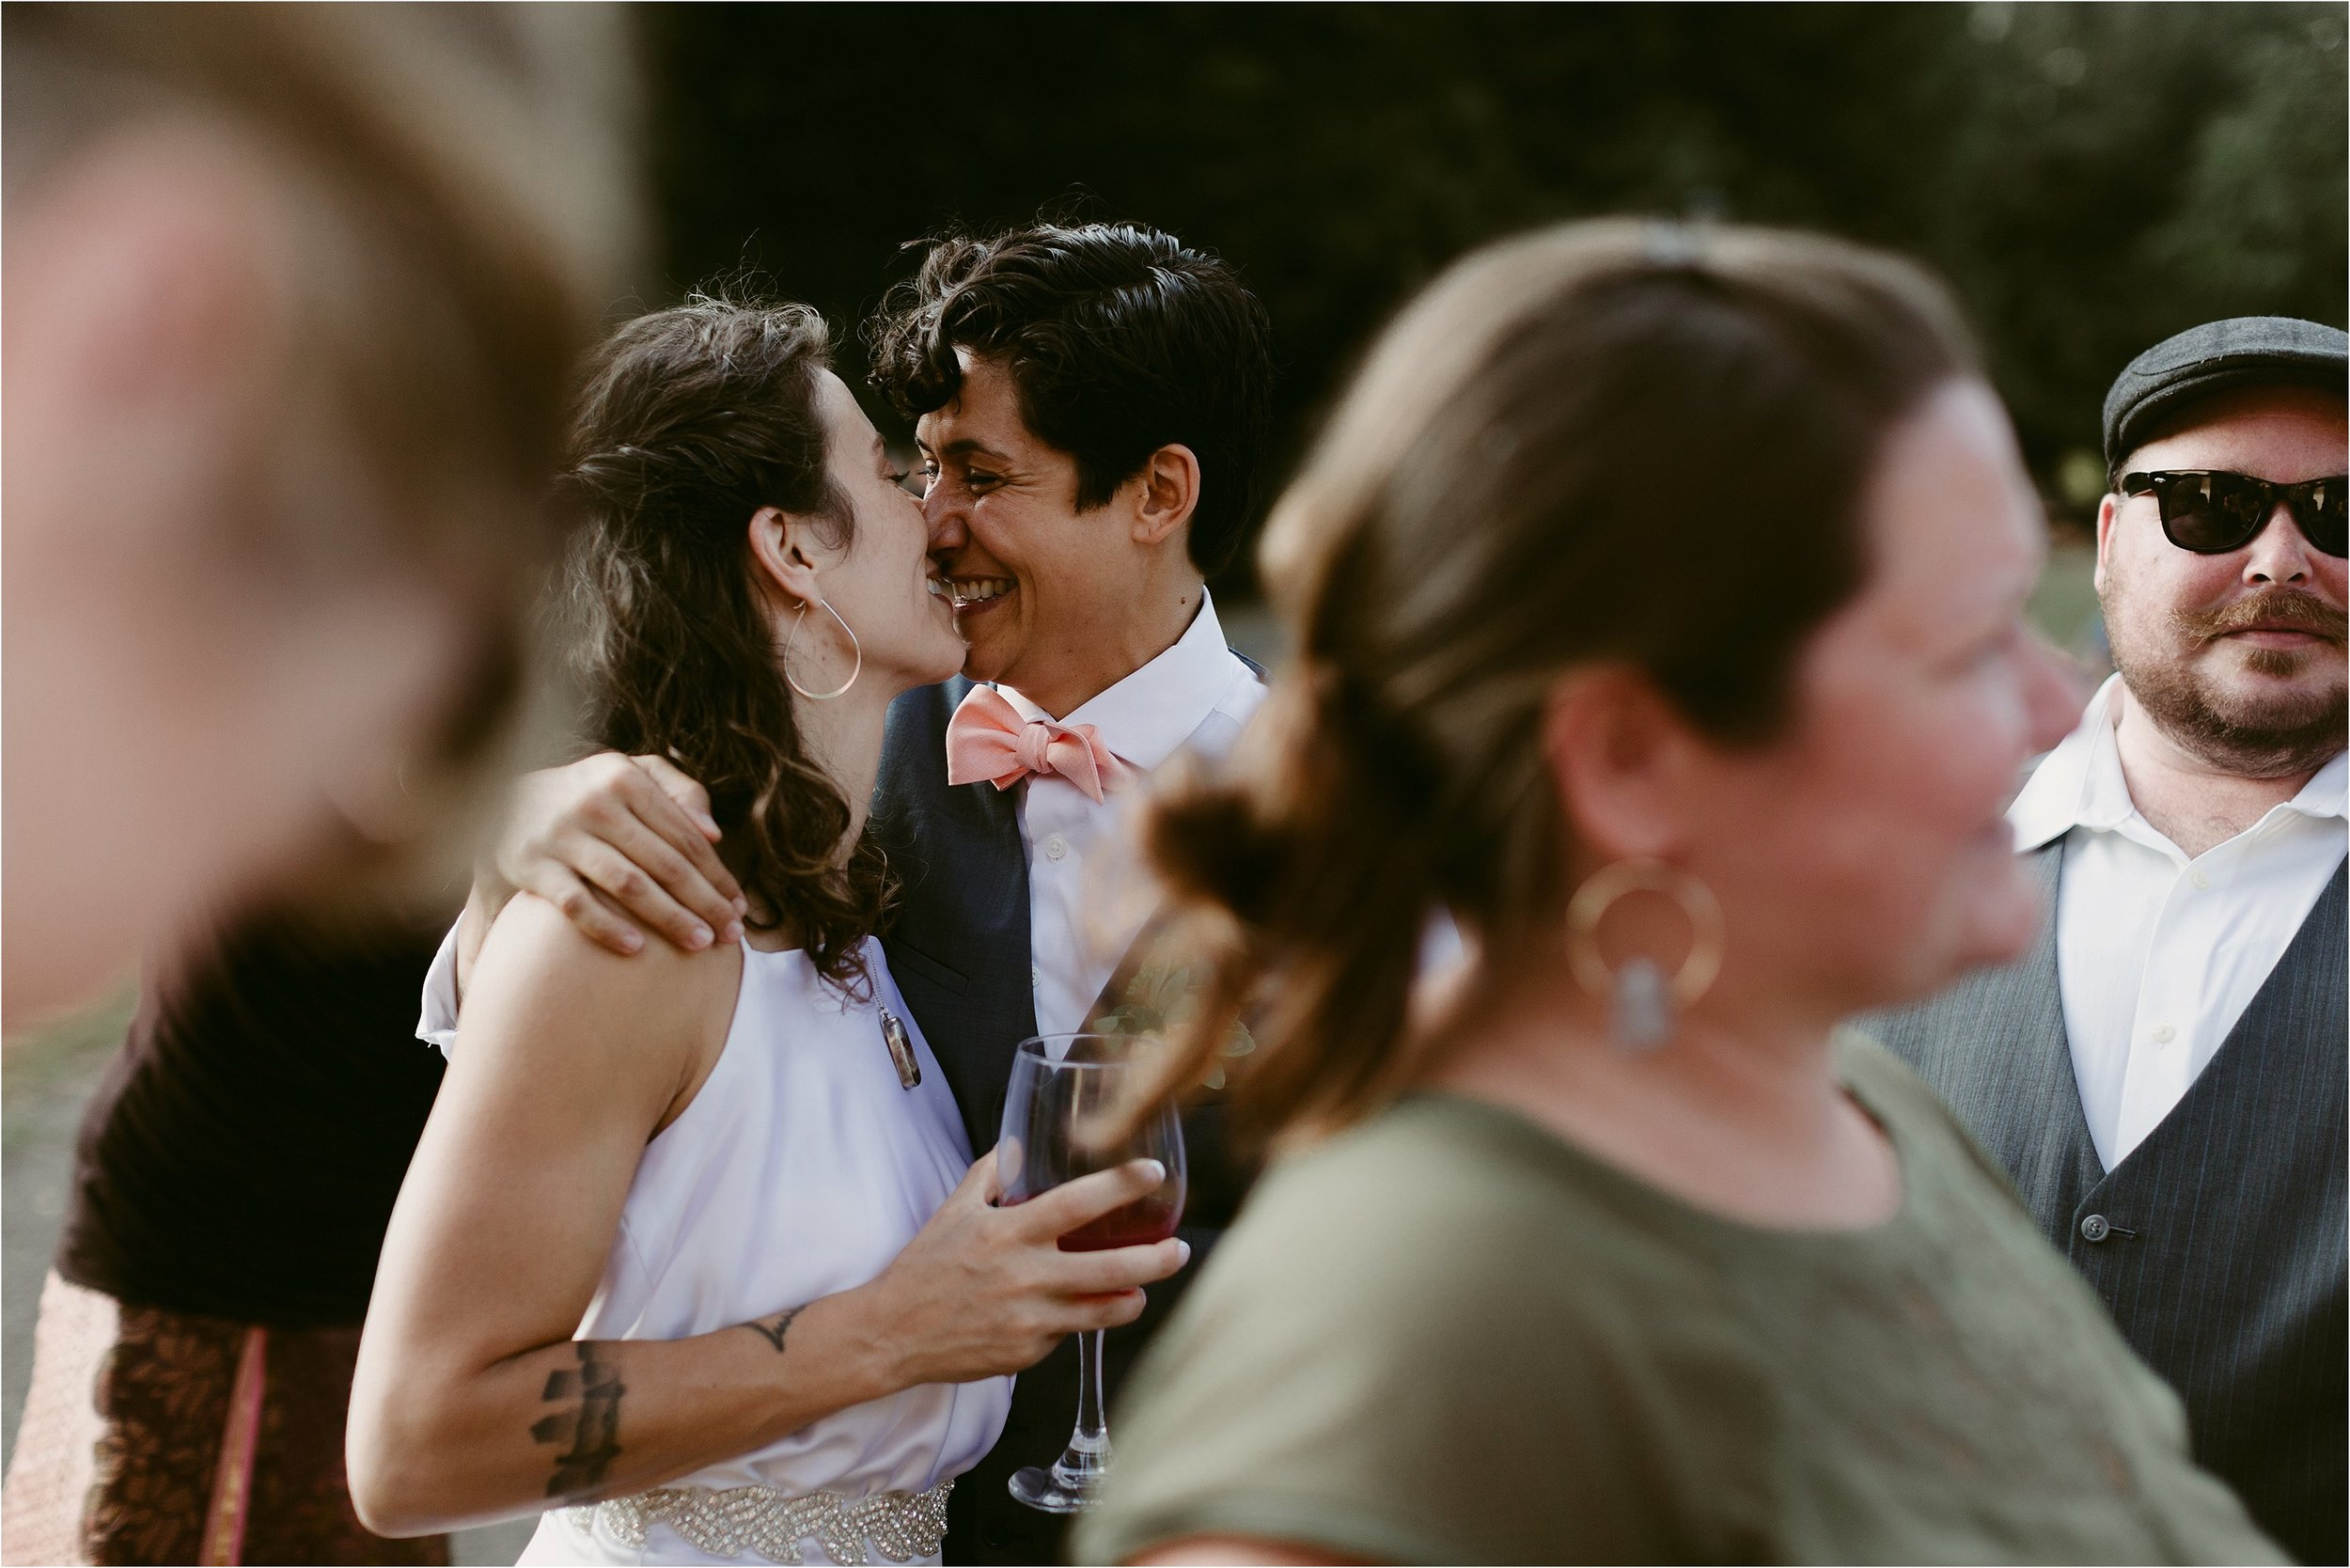 same-sex-wedding-catherdral-park-portland-indie-photographer_0222.jpg